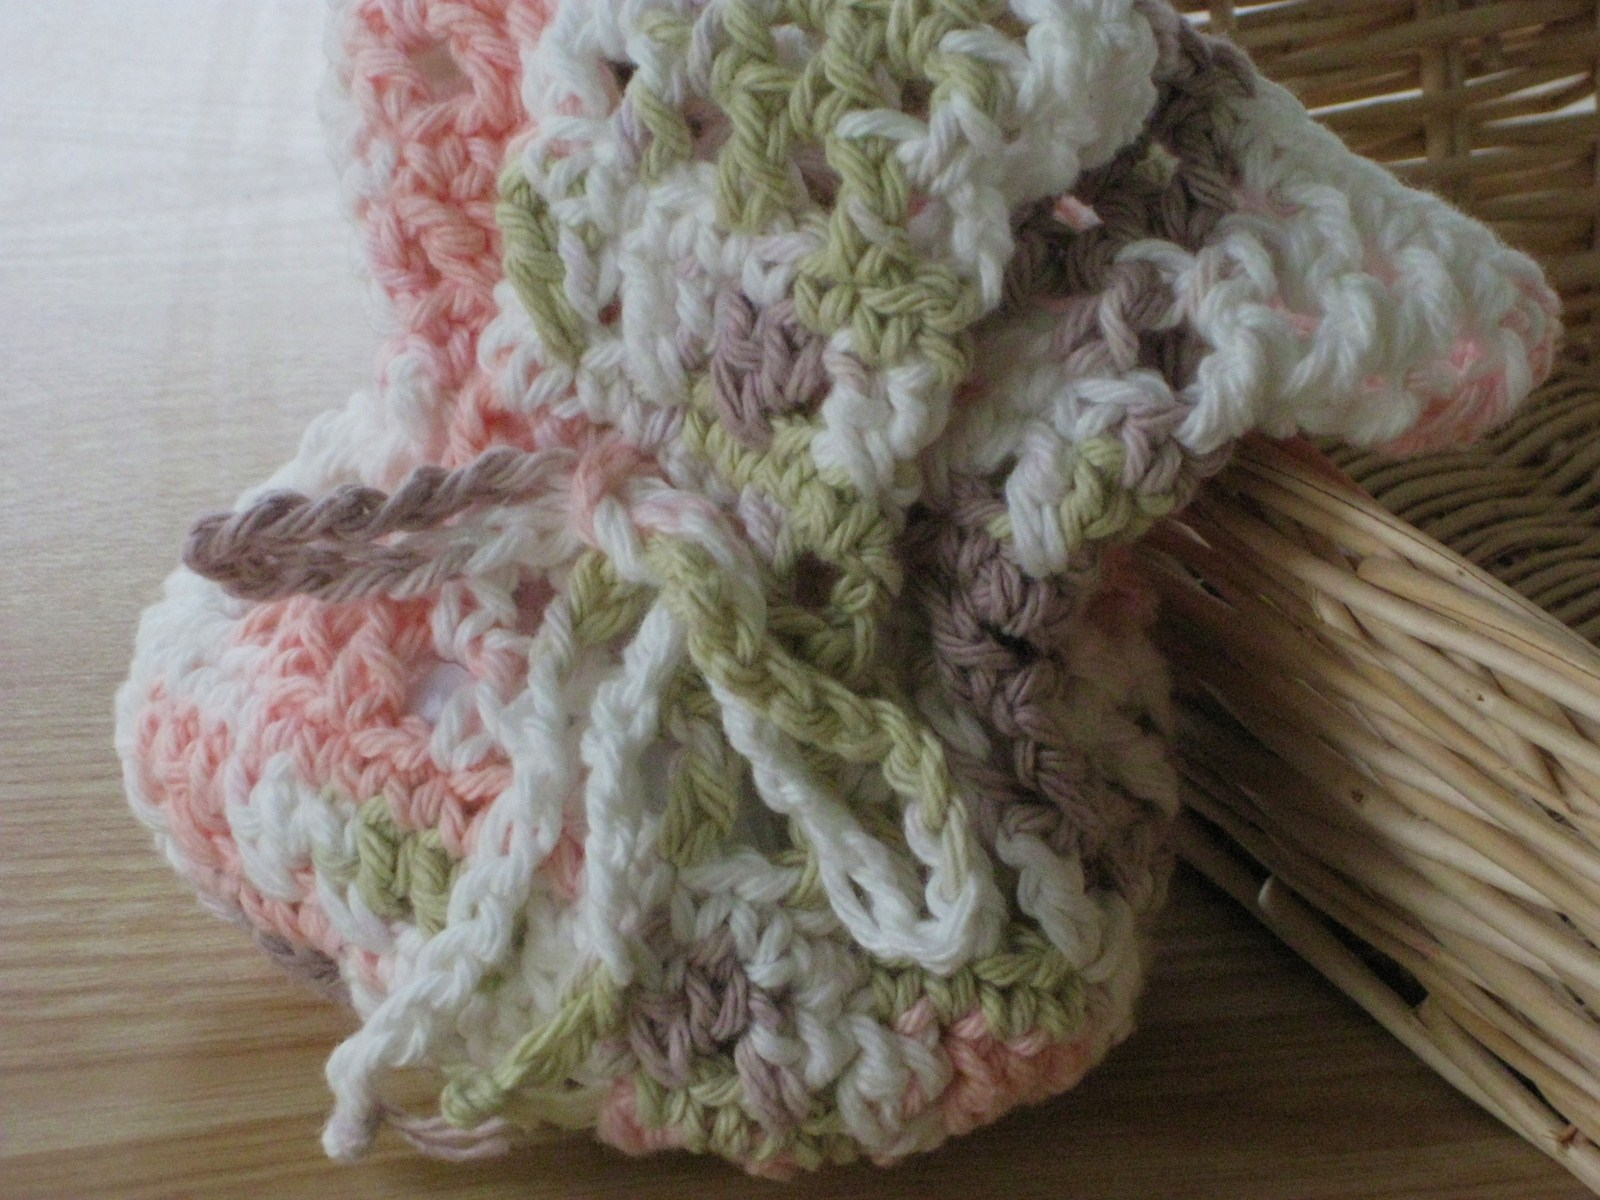 Crochet Round Pouch : ... by Laurie Laliberte: Change-Up, Just for Fun. . .Free Crochet Pattern